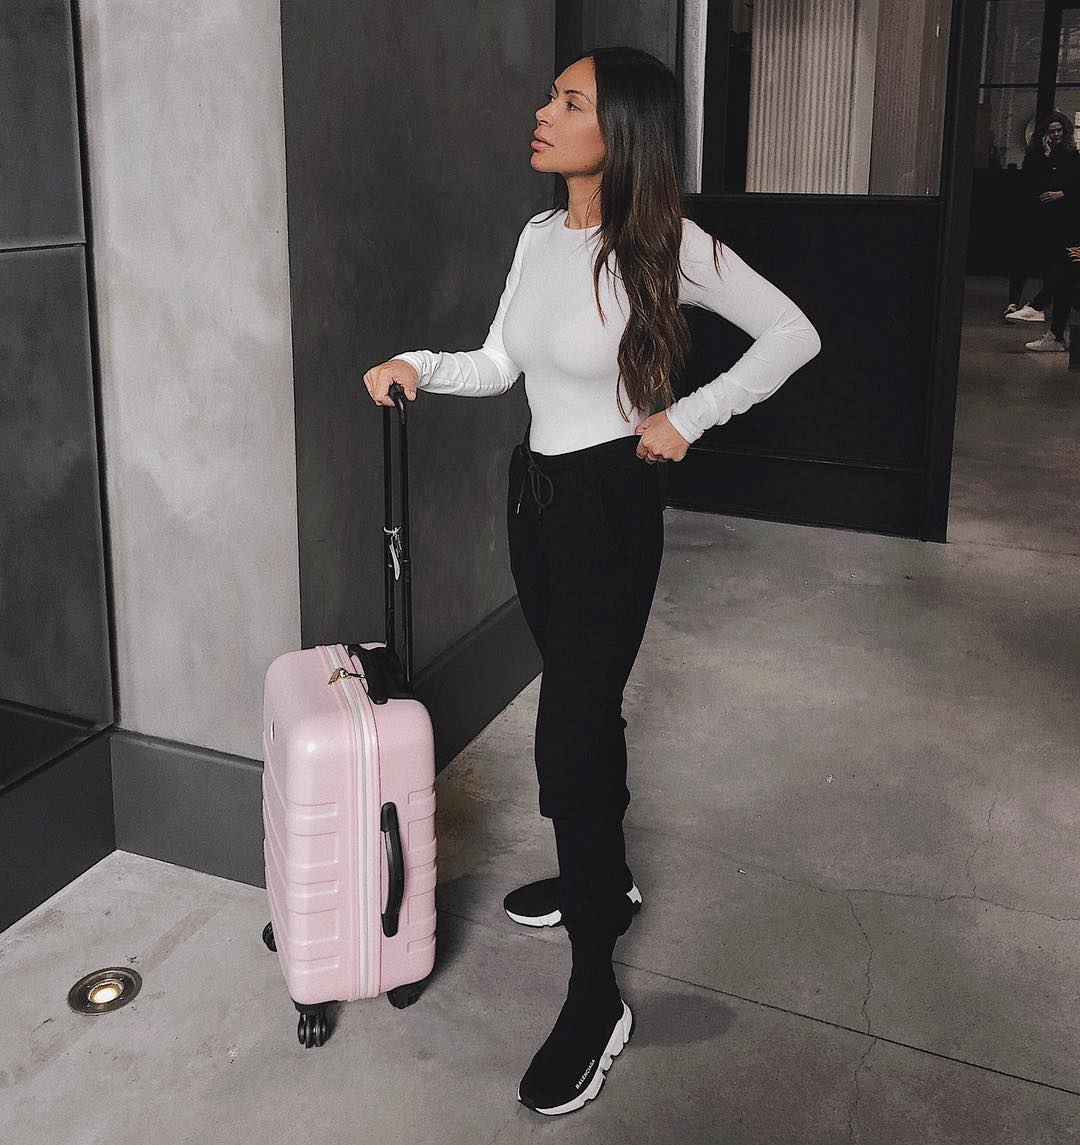 Airport Outfits That Are Both Stylish and Comfortable - Life With Me